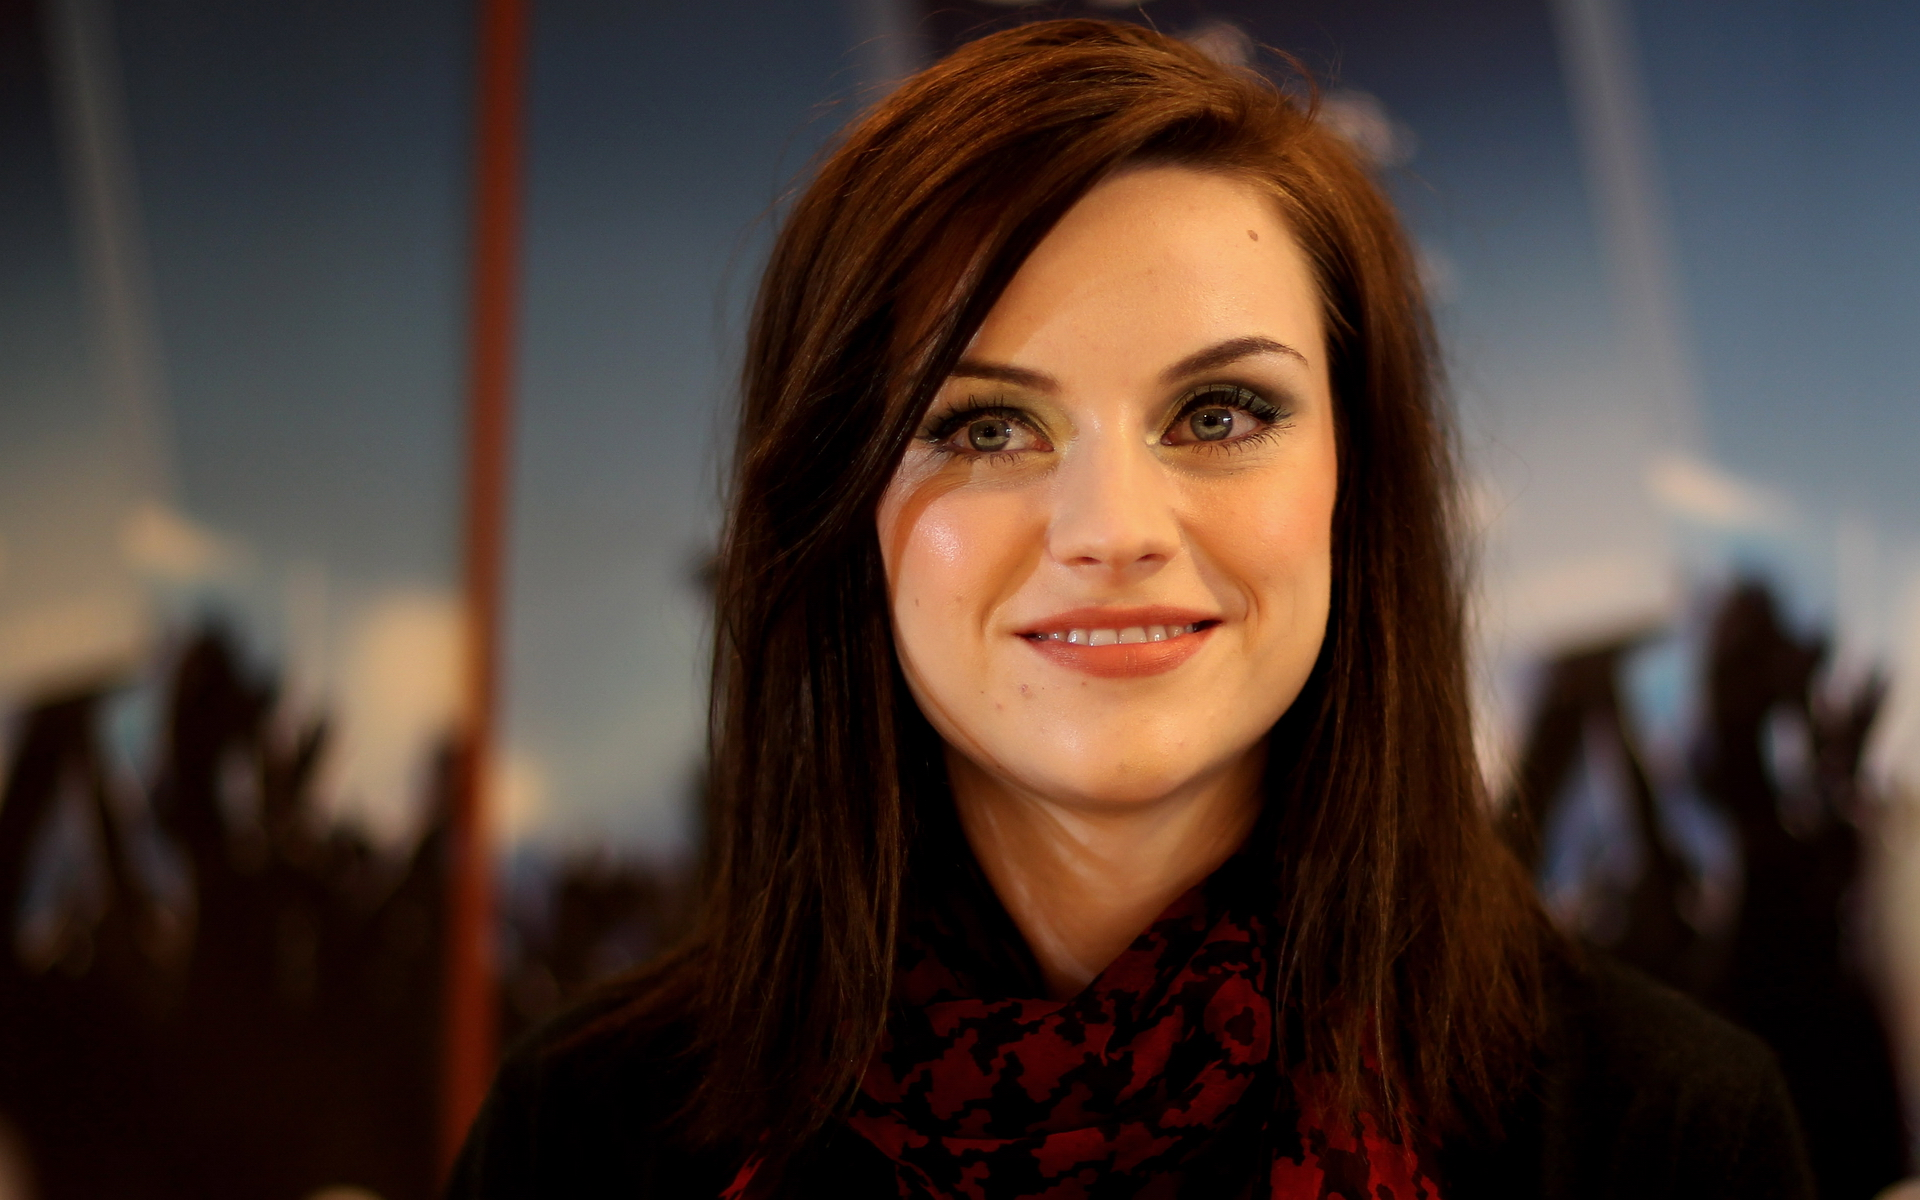 amy - amy-macdonald Wallpaper